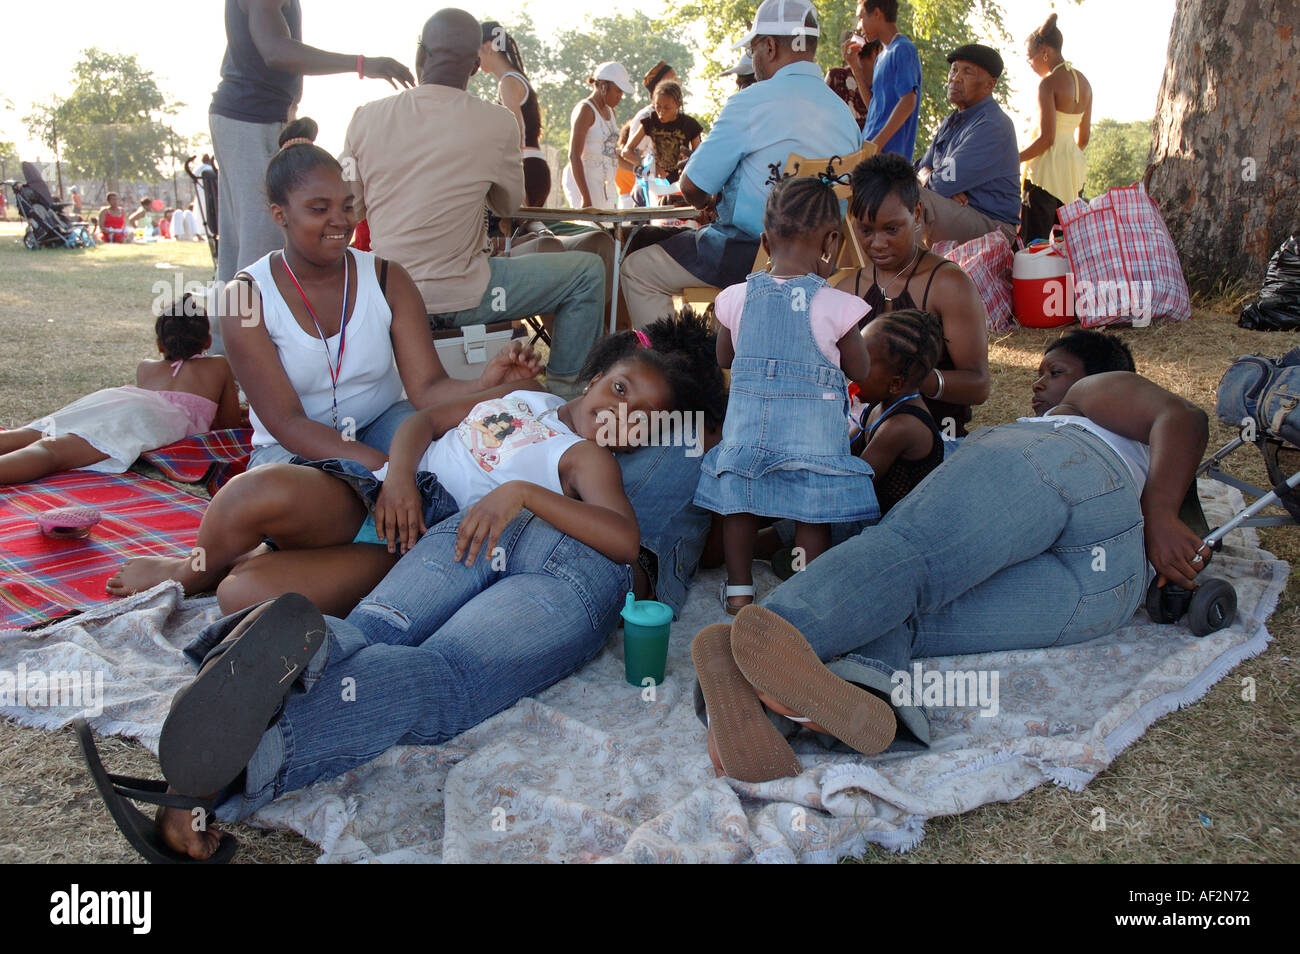 Extended family picnicking and relaxing in Brockwell park in summer. - Stock Image